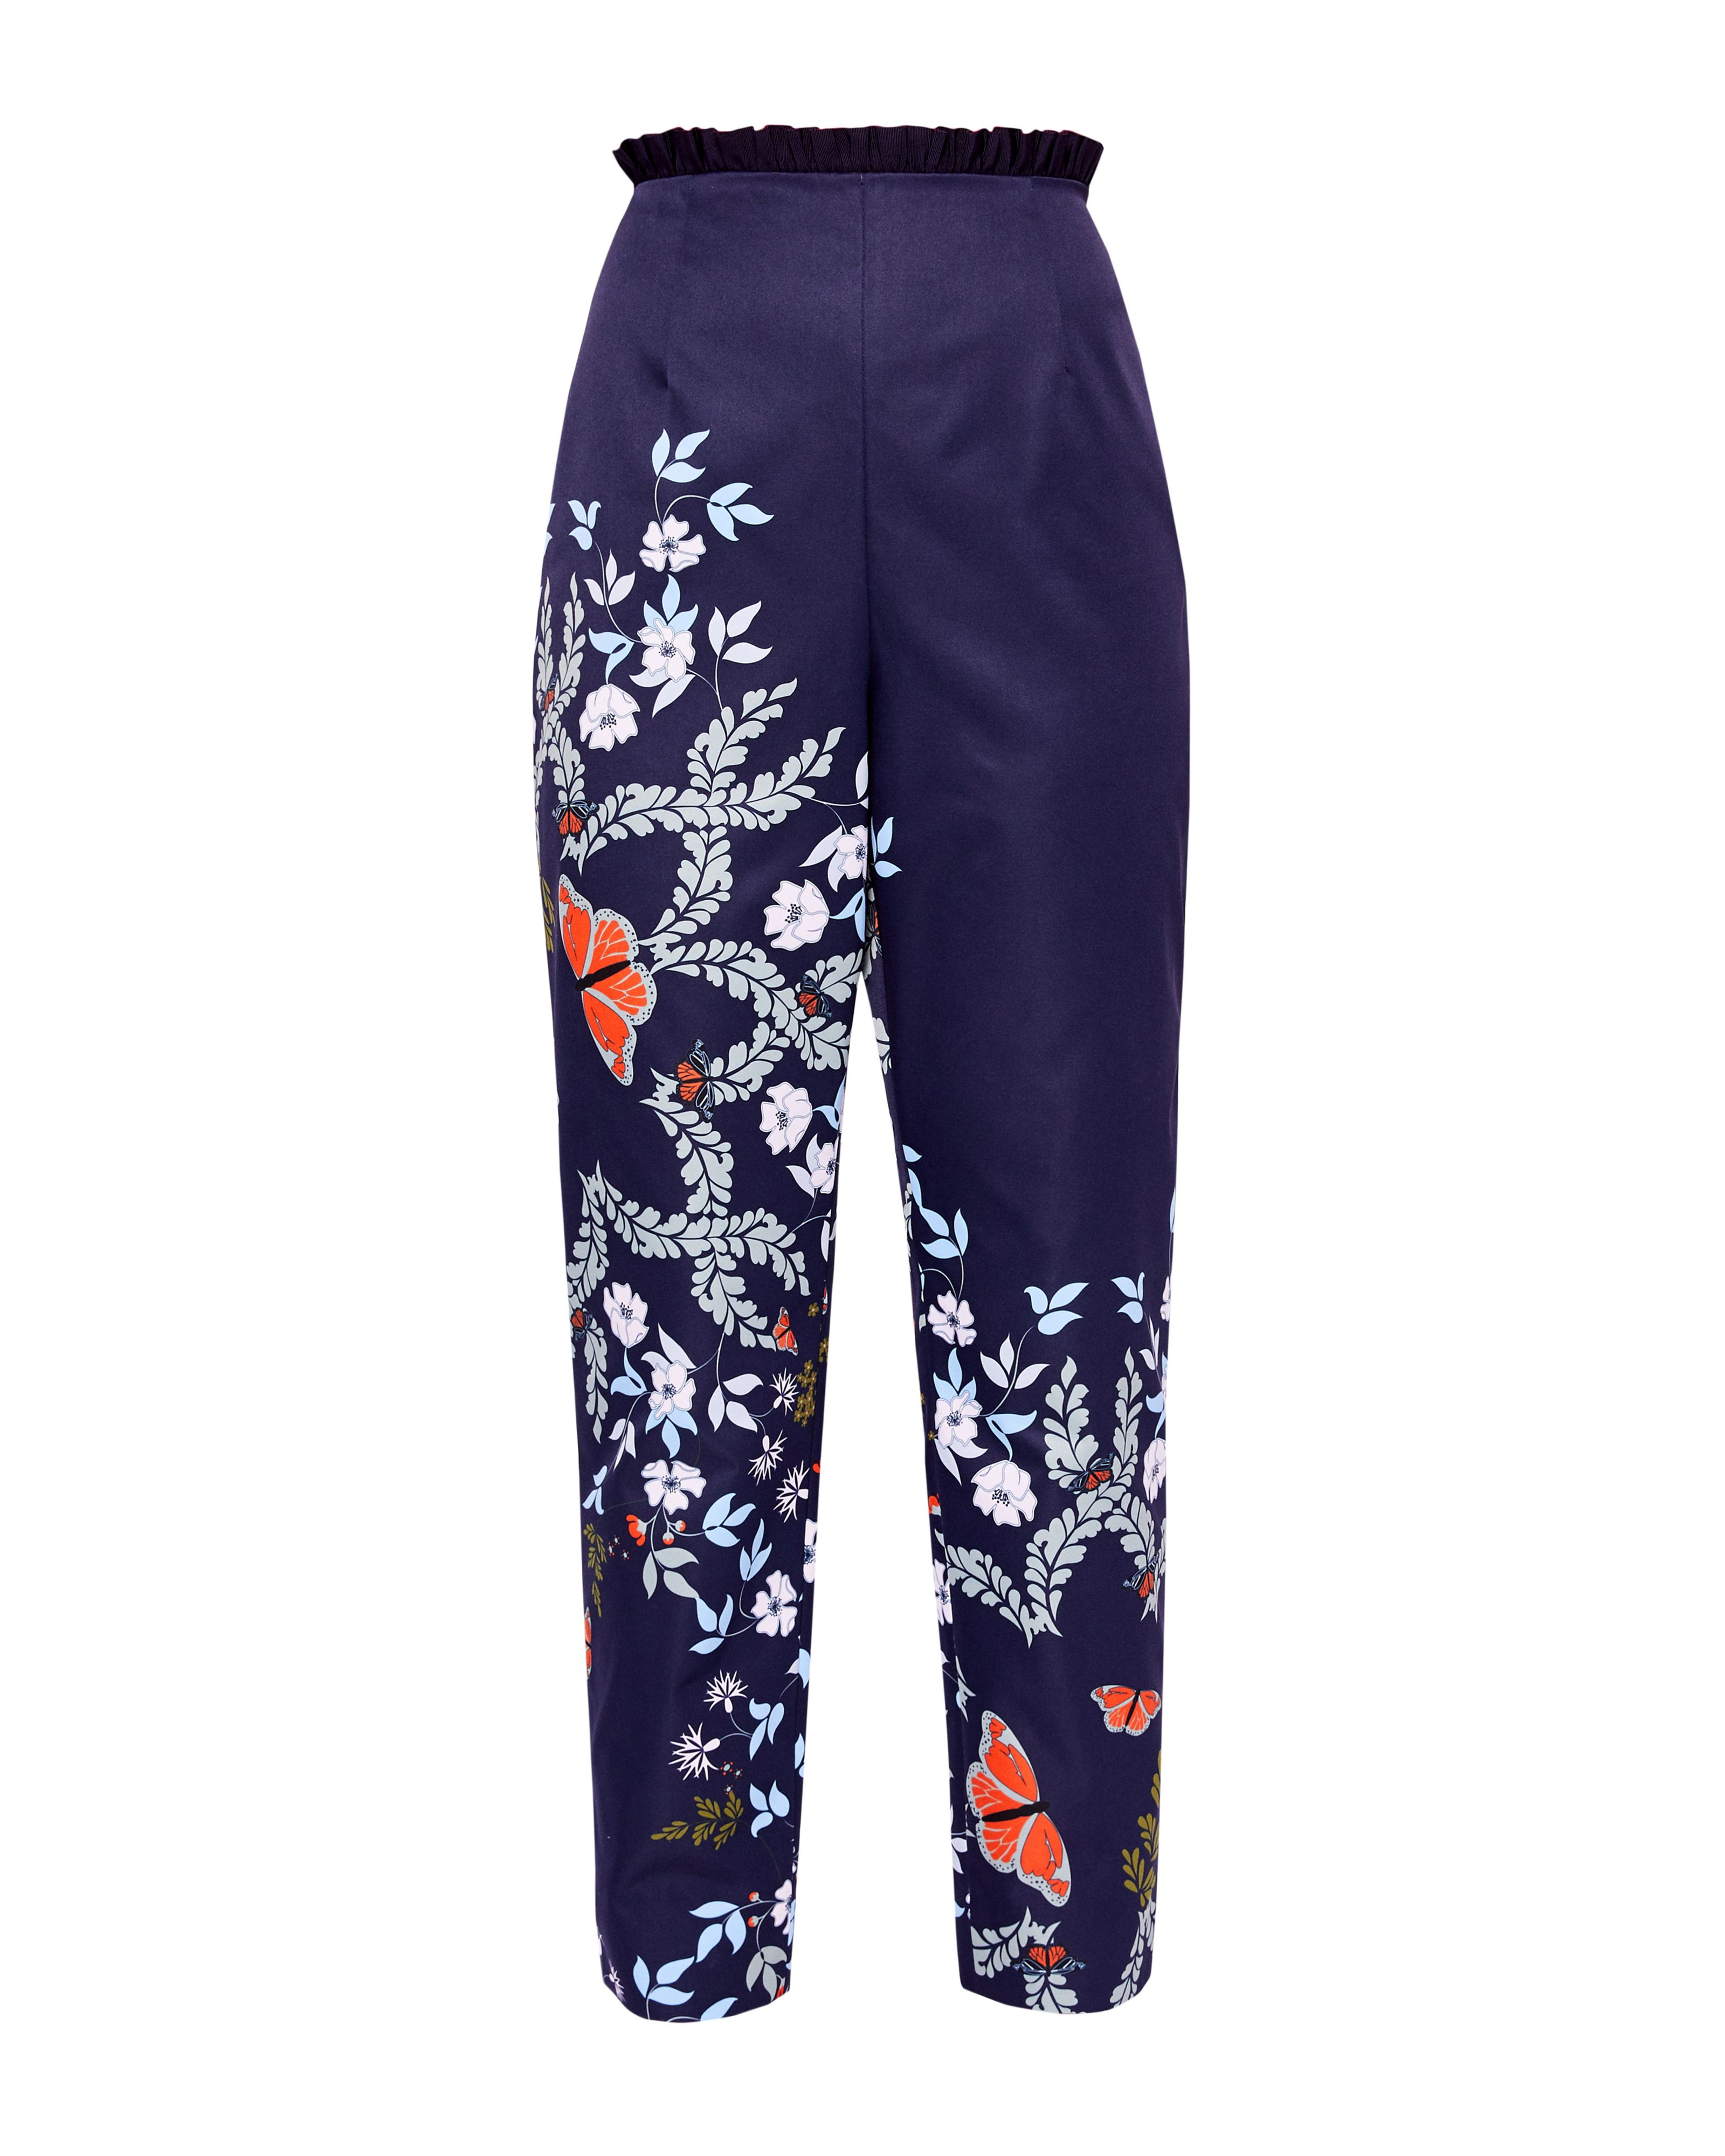 Ted Baker Leonna Kyoto Gardens Tapered Trousers, Mid Blue